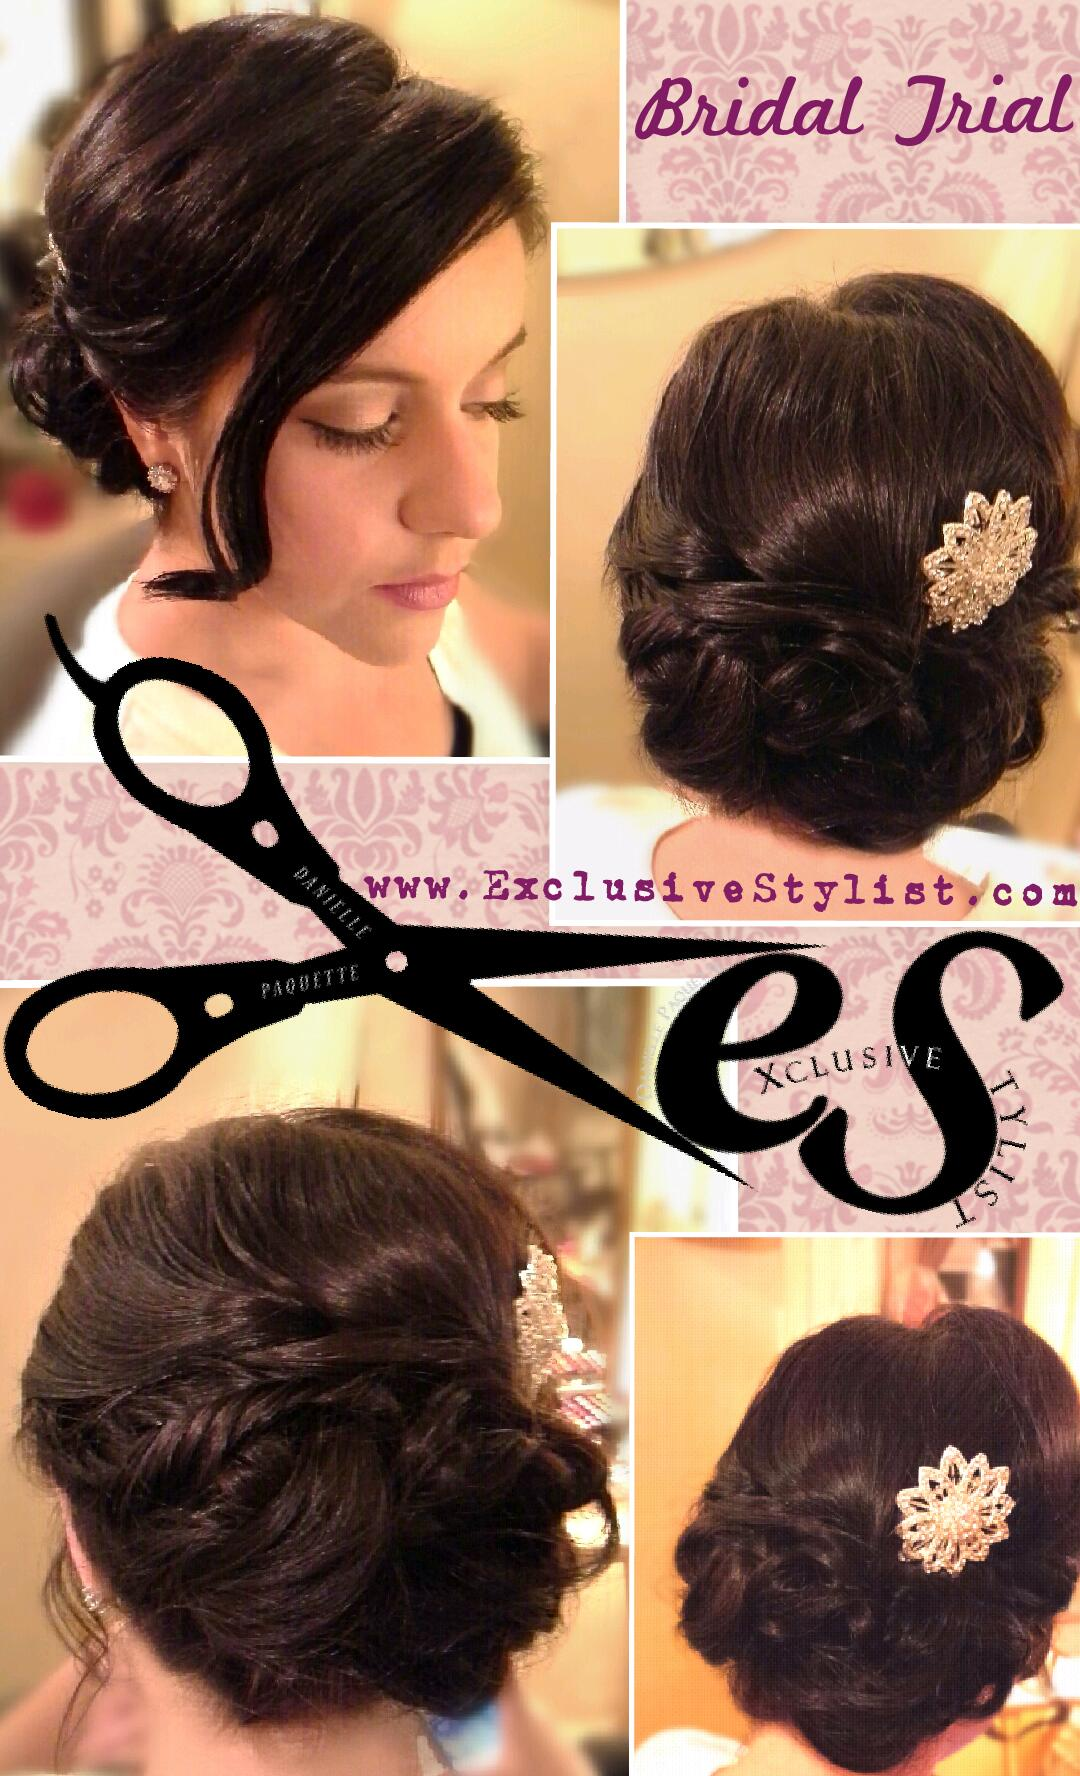 Bridal Trial for Amelia